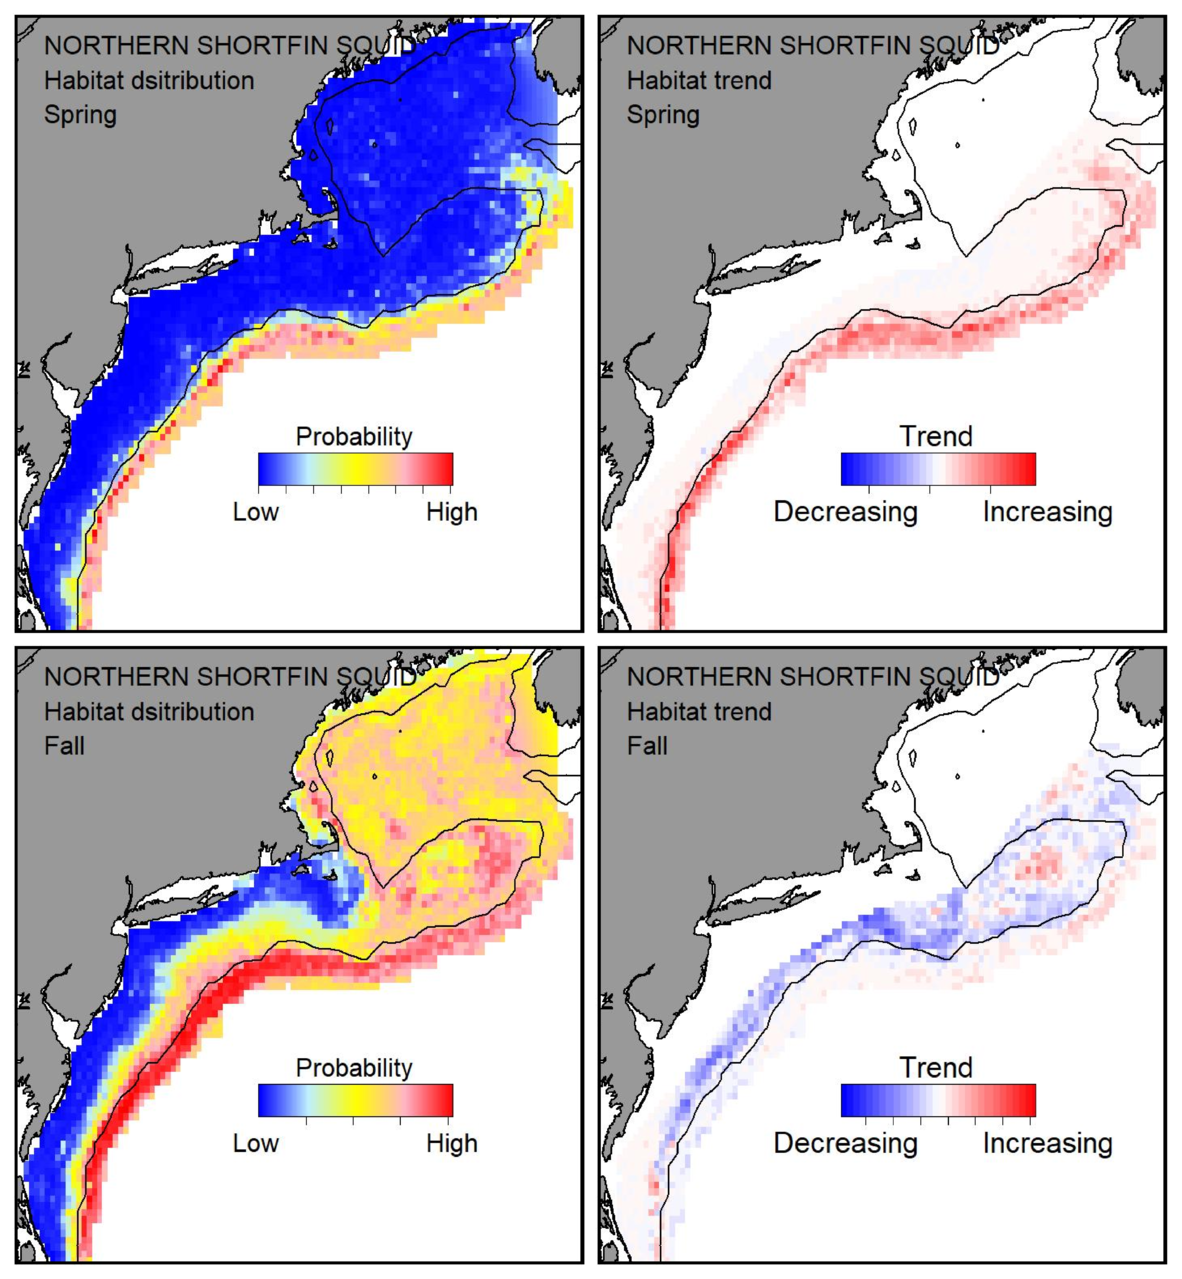 Probable habitat distribution for shortfin squid showing the highest concentration and increasing trend in the Gulf of Maine during the spring. Bottom row: Probable habitat distribution for shortfin squid showing the highest concentration and increasing trend in the Gulf of Maine during the fall.